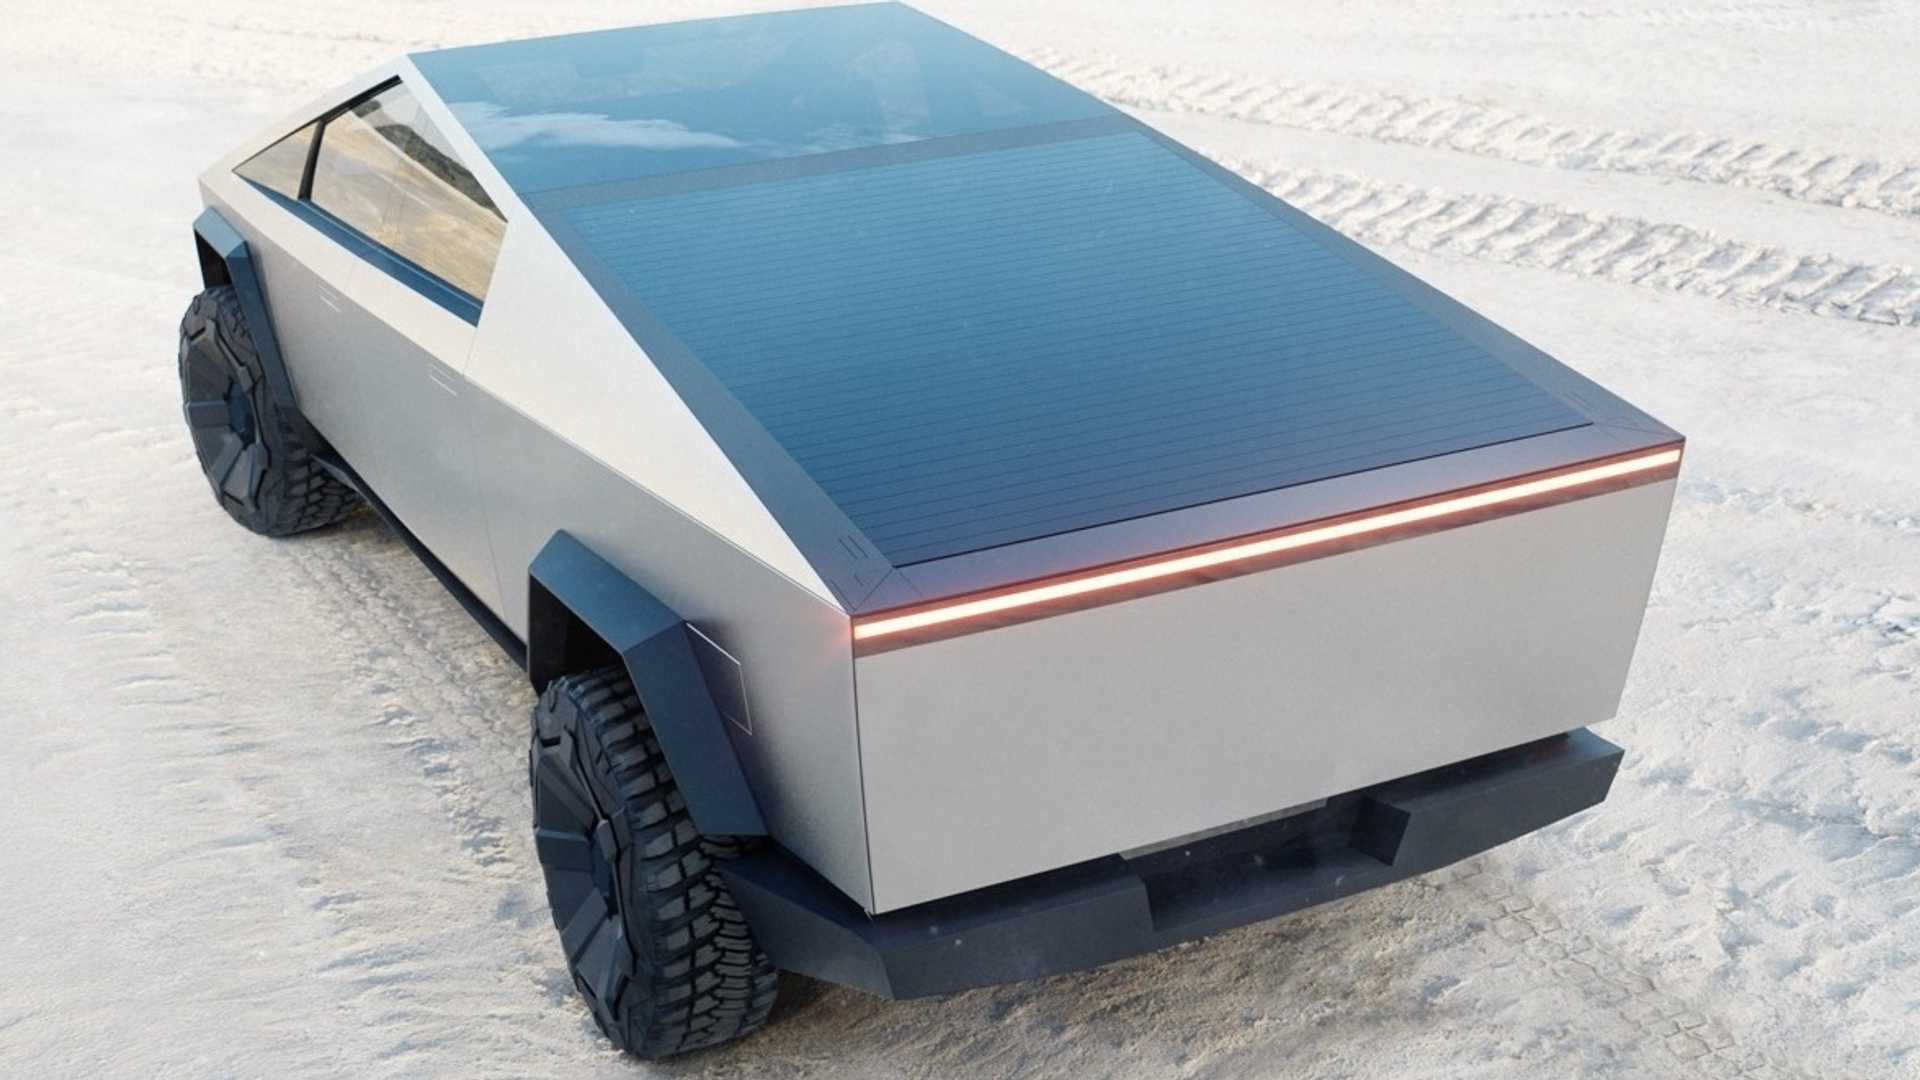 Tesla Cybertruck Videos Show Roll-Down Bed Cover, 911 Drag Race